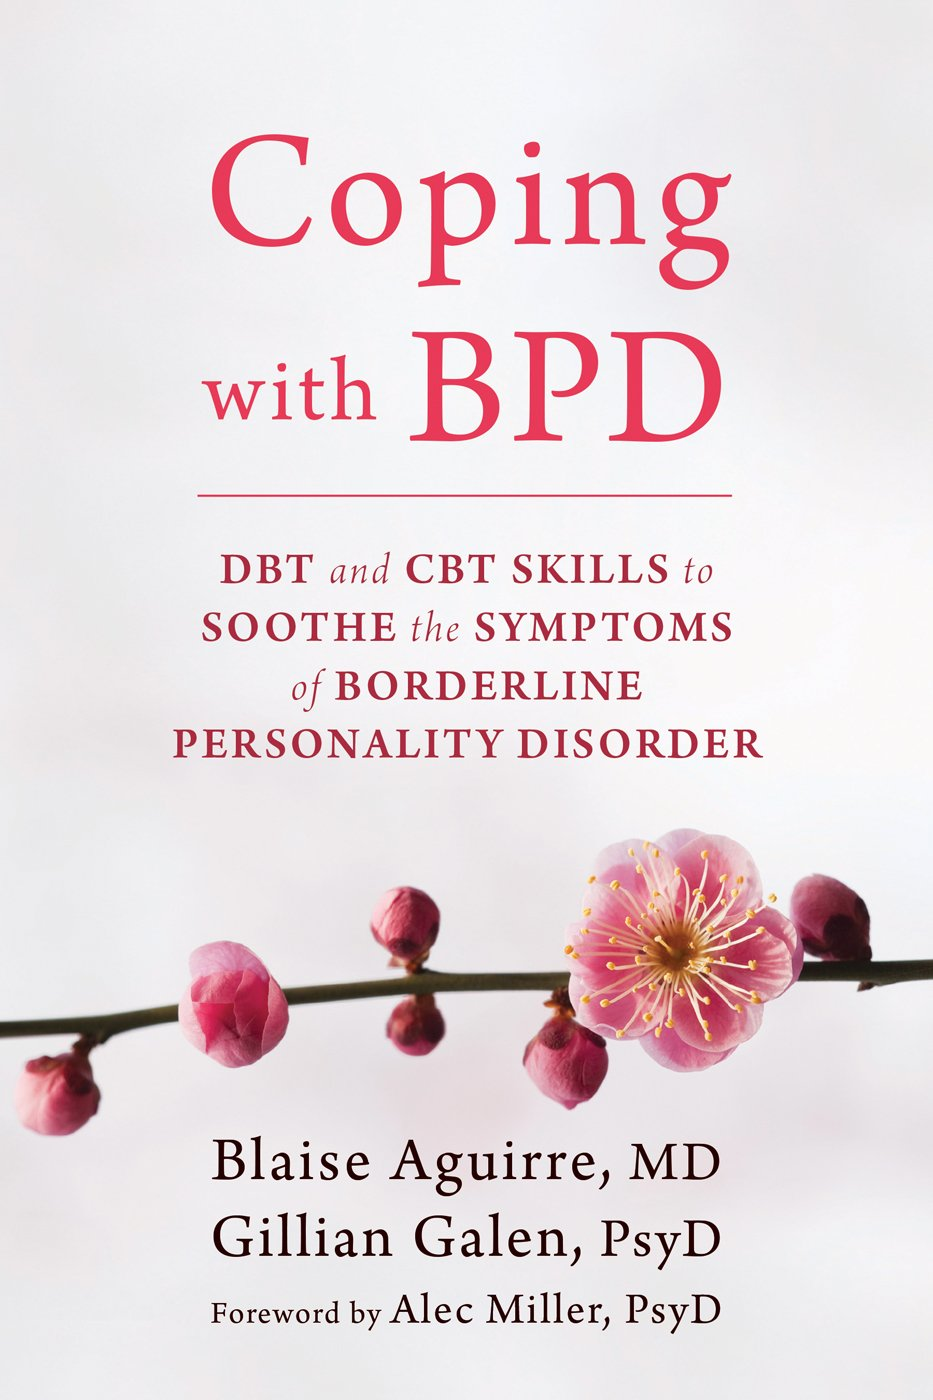 Workbooks borderline personality disorder workbook : Coping with BPD: DBT and CBT Skills to Soothe the Symptoms of ...